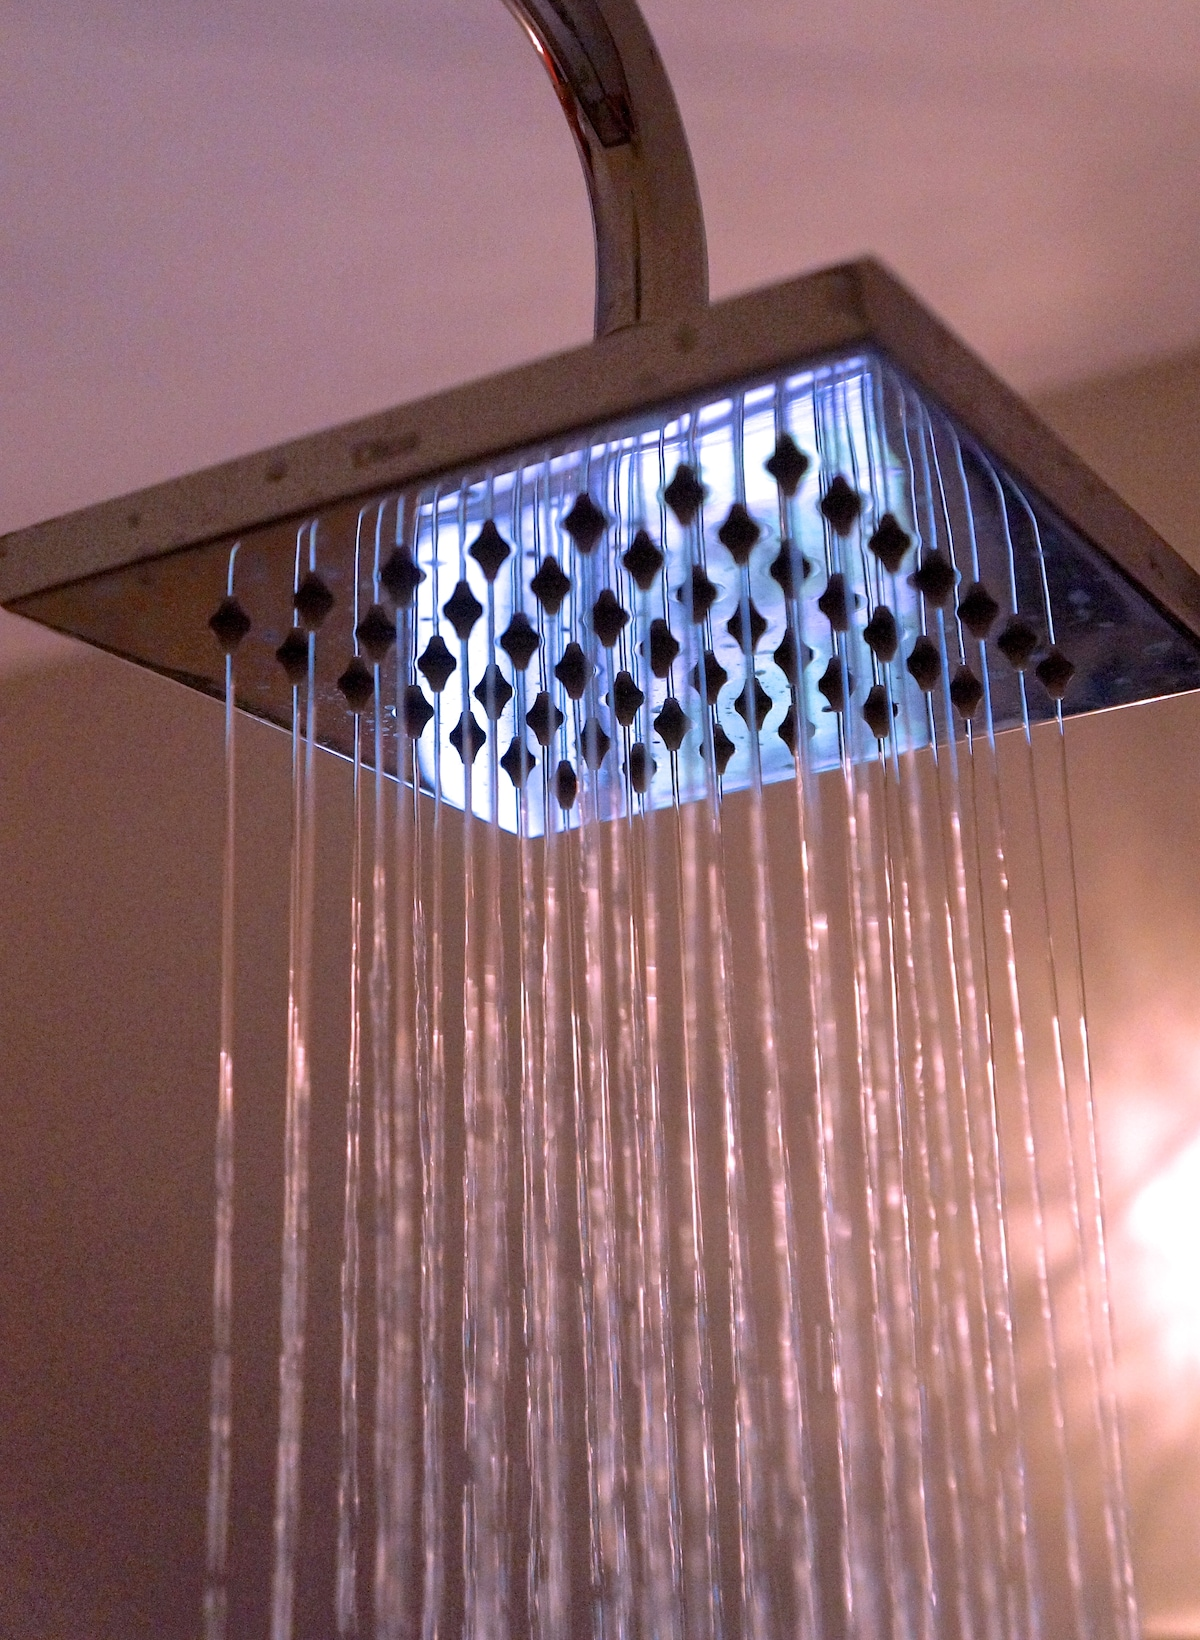 Rain shower head with excellent pressure in all bathrooms